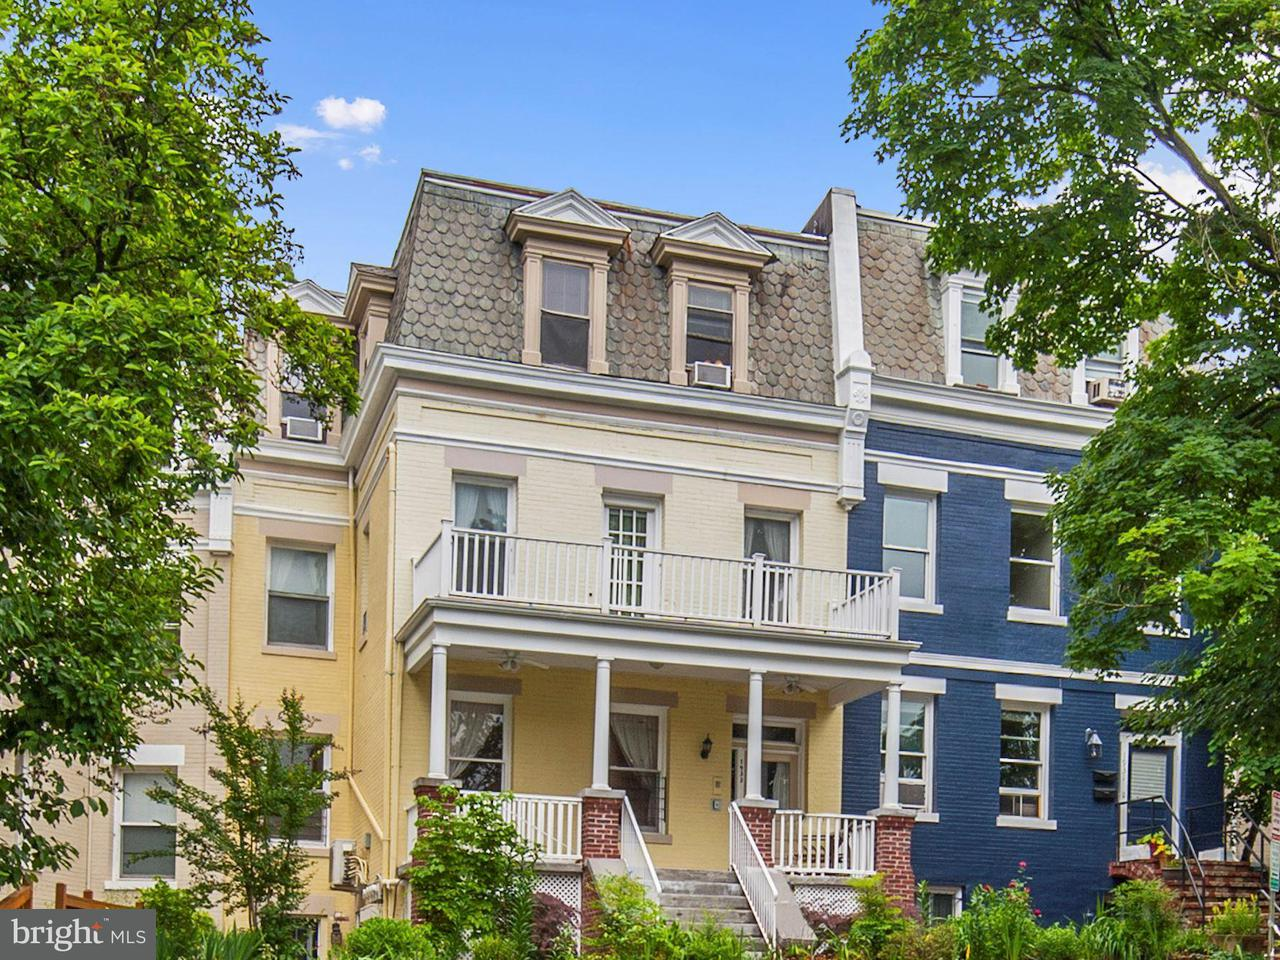 Townhouse for Sale at 1933 PARK RD NW 1933 PARK RD NW Washington, District Of Columbia 20010 United States